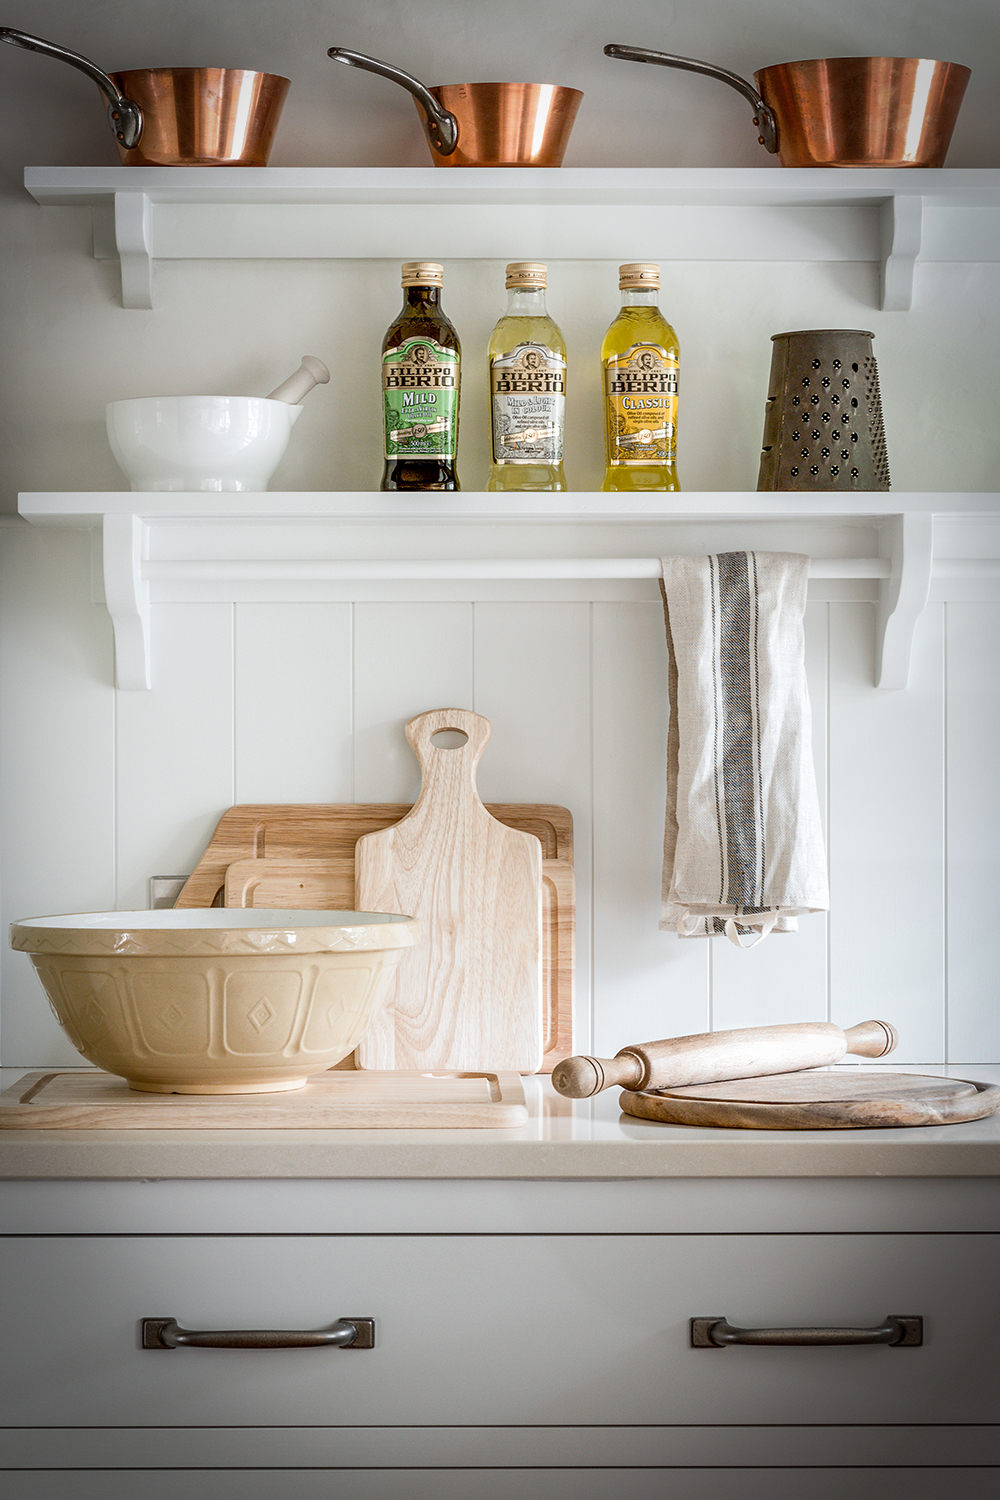 Classic shaker Kingham kitchen drawers and shelves with country copper pots and baking equipment.